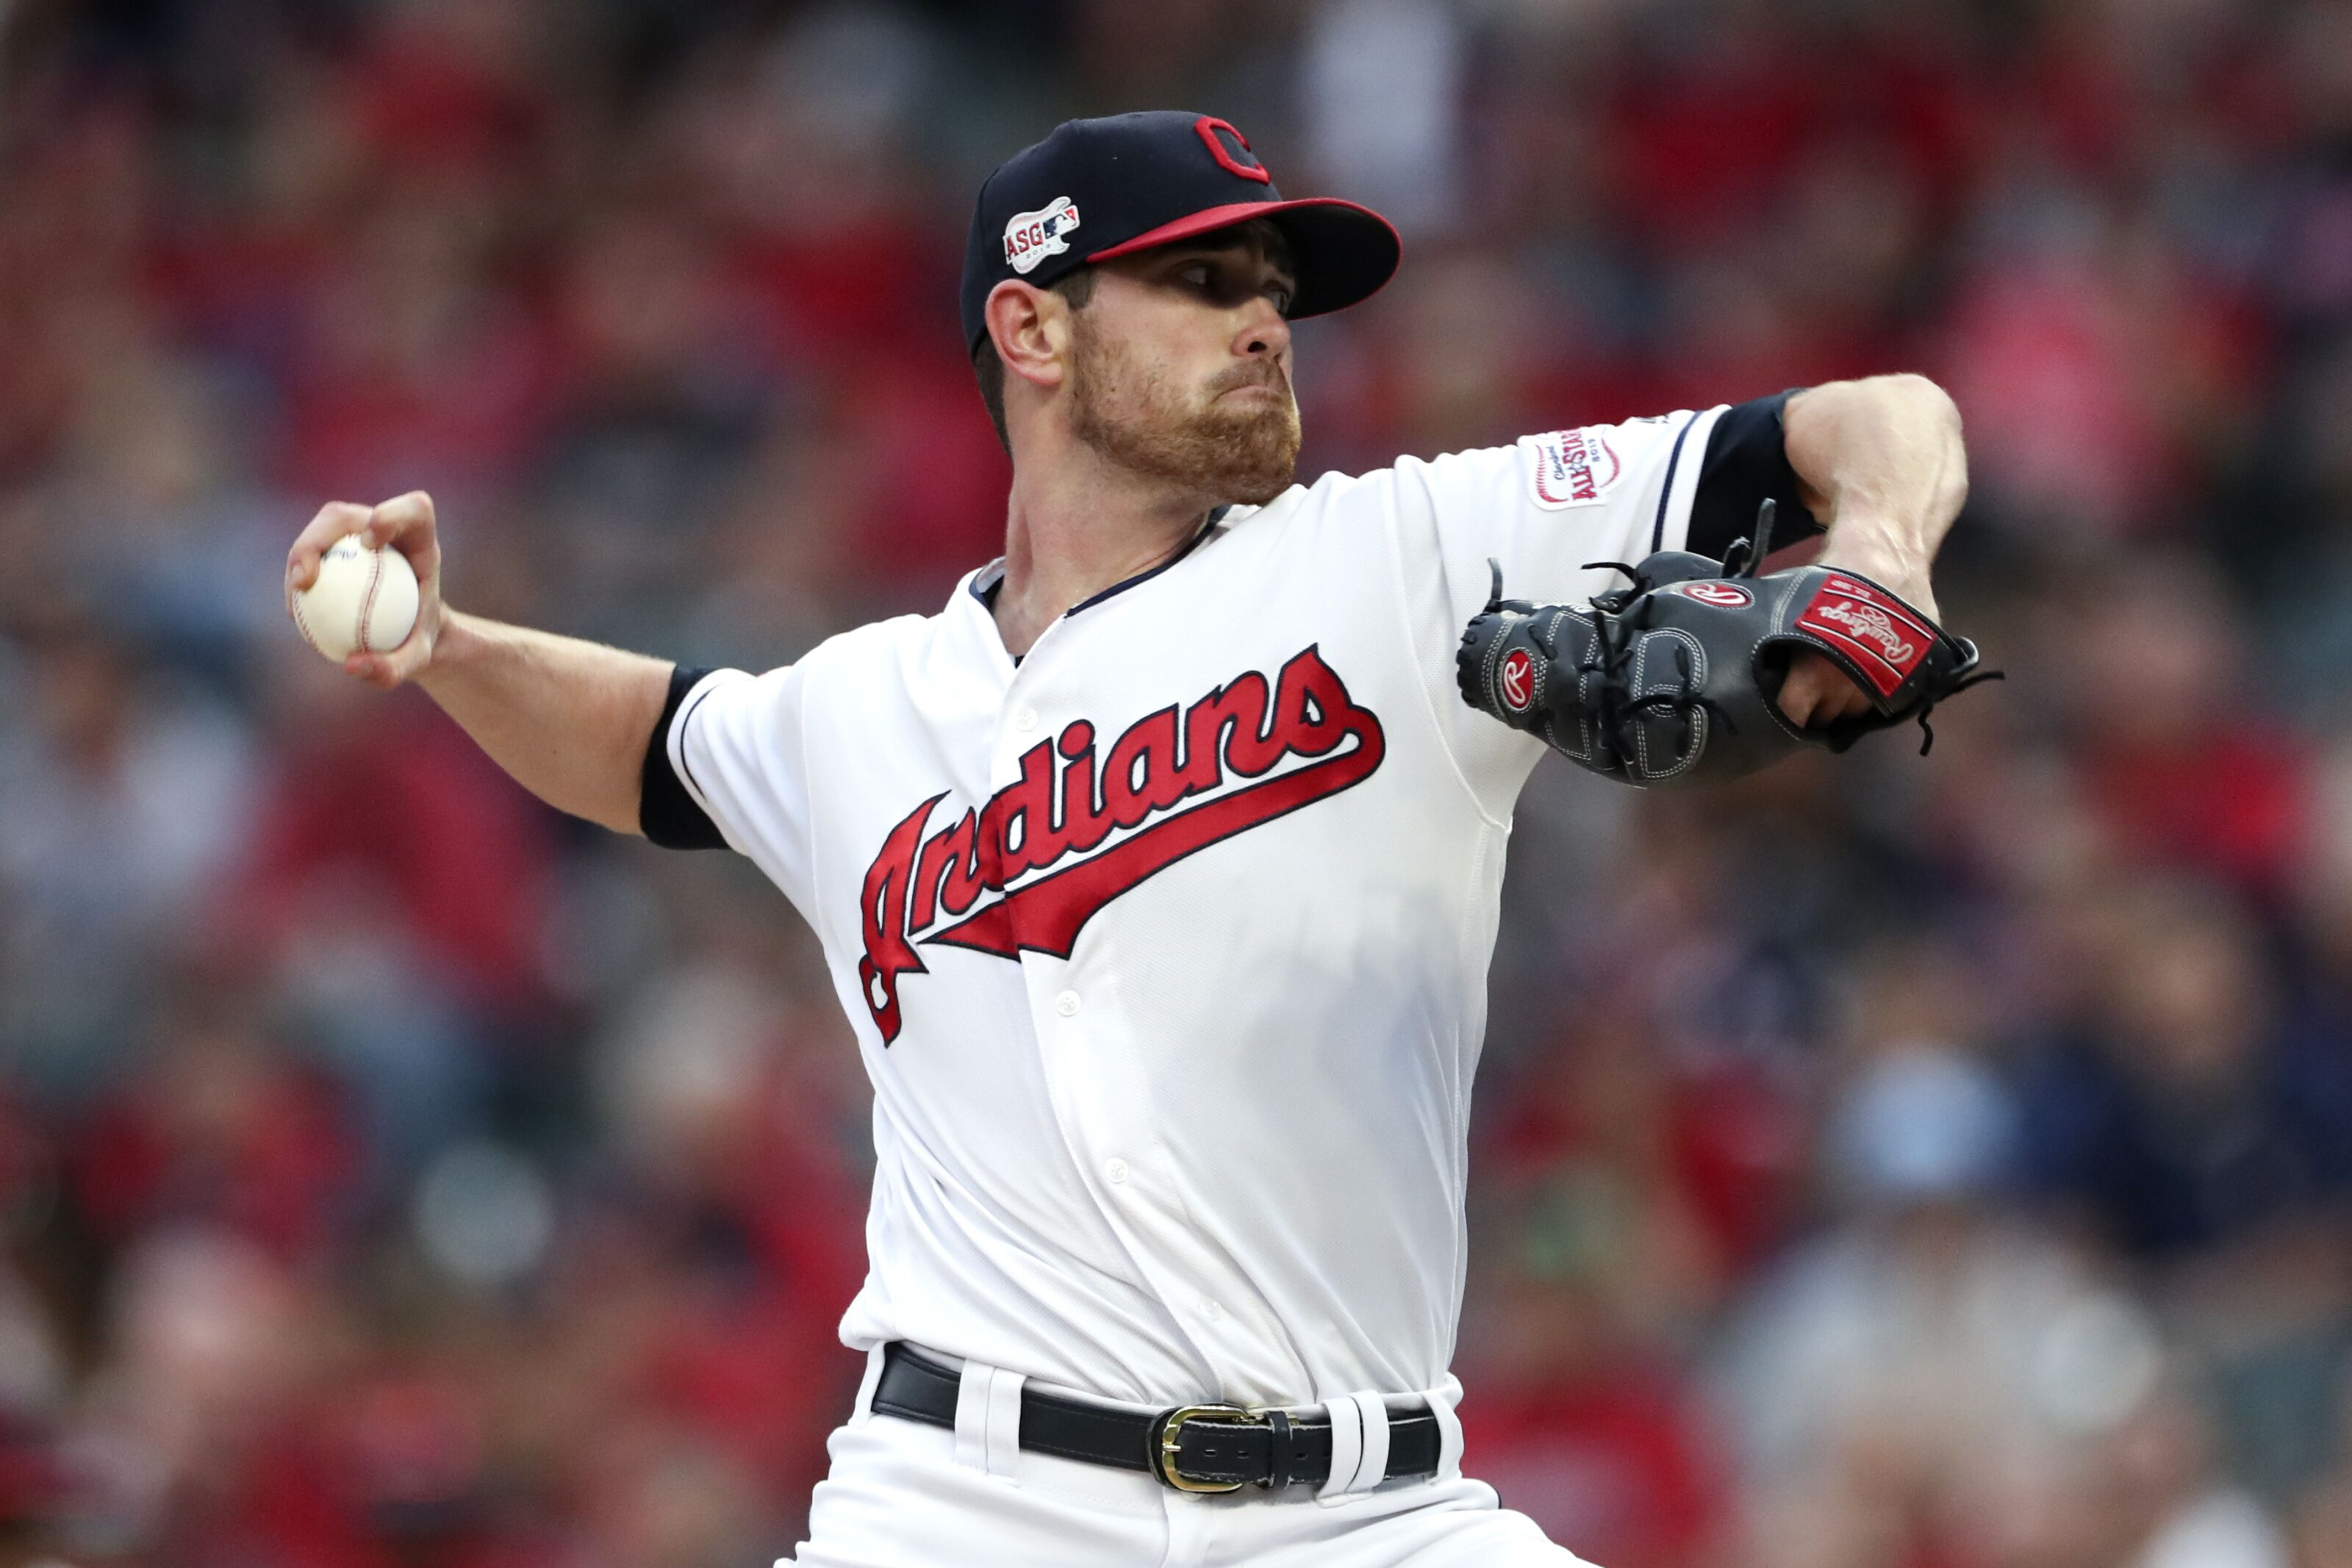 Cleveland Indians closer to first than third in 2020 AL Central race